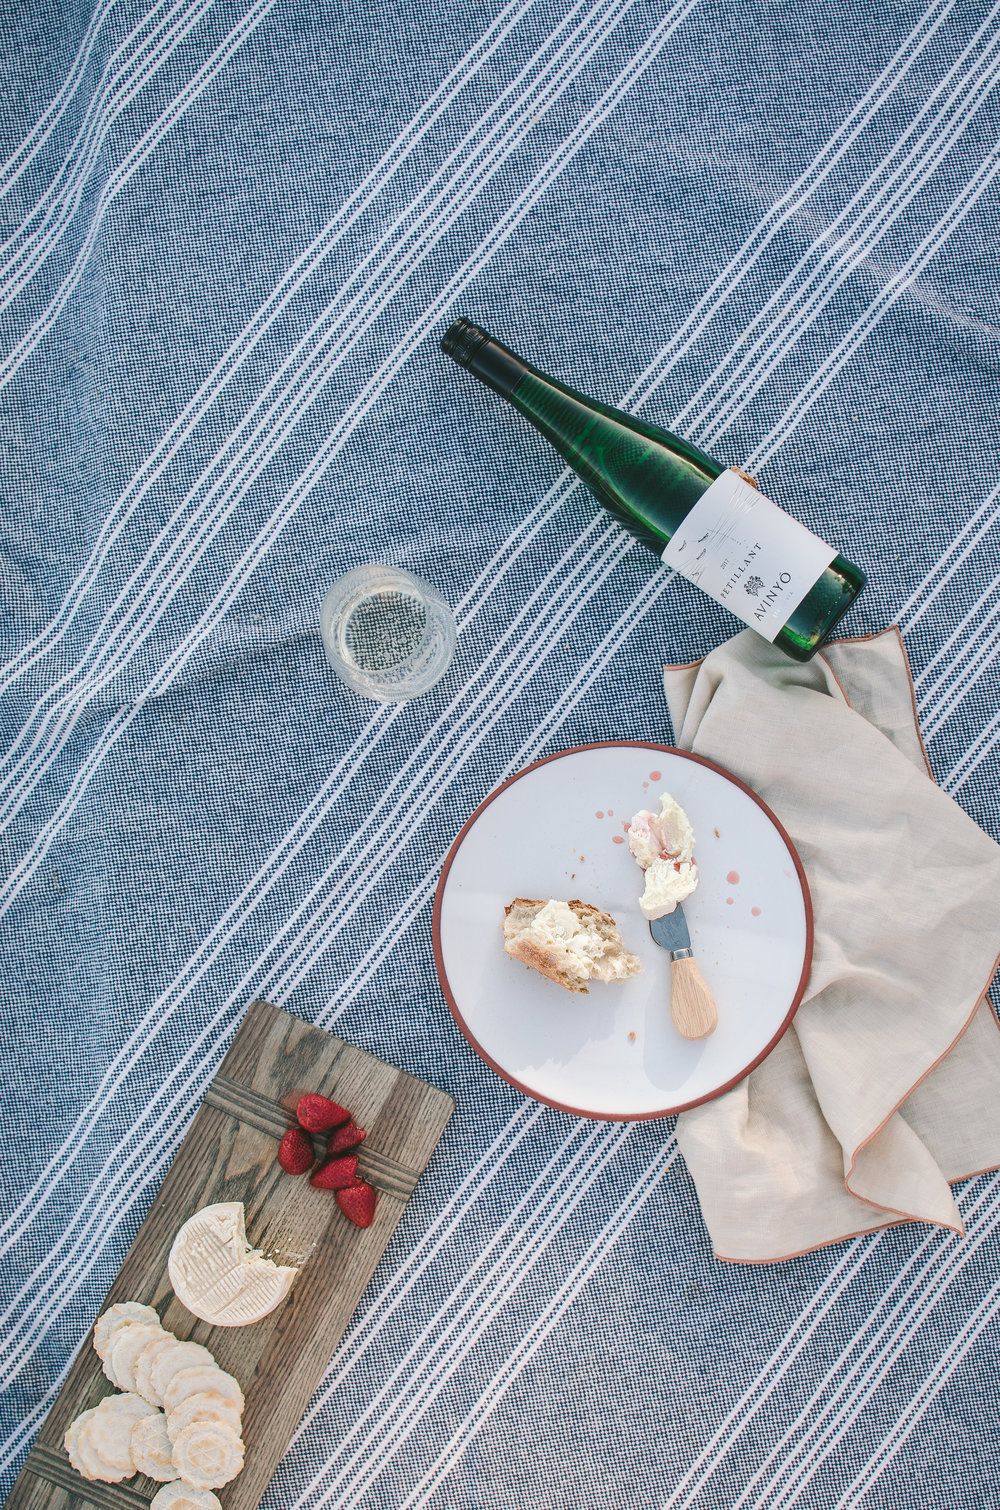 2. Light bodied sparkling white - At home, in the U.S., no cheeseboard is complete without a Vermont Creamery's cheese! This time, we paired their Cremont with one of our go-to summer wines, Avinyo's Petillant.Petillant is a vi d'agulla, the Catalan name for prickly wine, which means it has a very light tickle of a bubble. It's perfect for the hot summer days because it is low in alcohol, super fresh and spritzy and has beautiful notes of honeysuckle and citrus with a fresh minerality. Plus, that label is seriously the cutest, wouldn't a string of these bottles make a perfect centerpiece?!